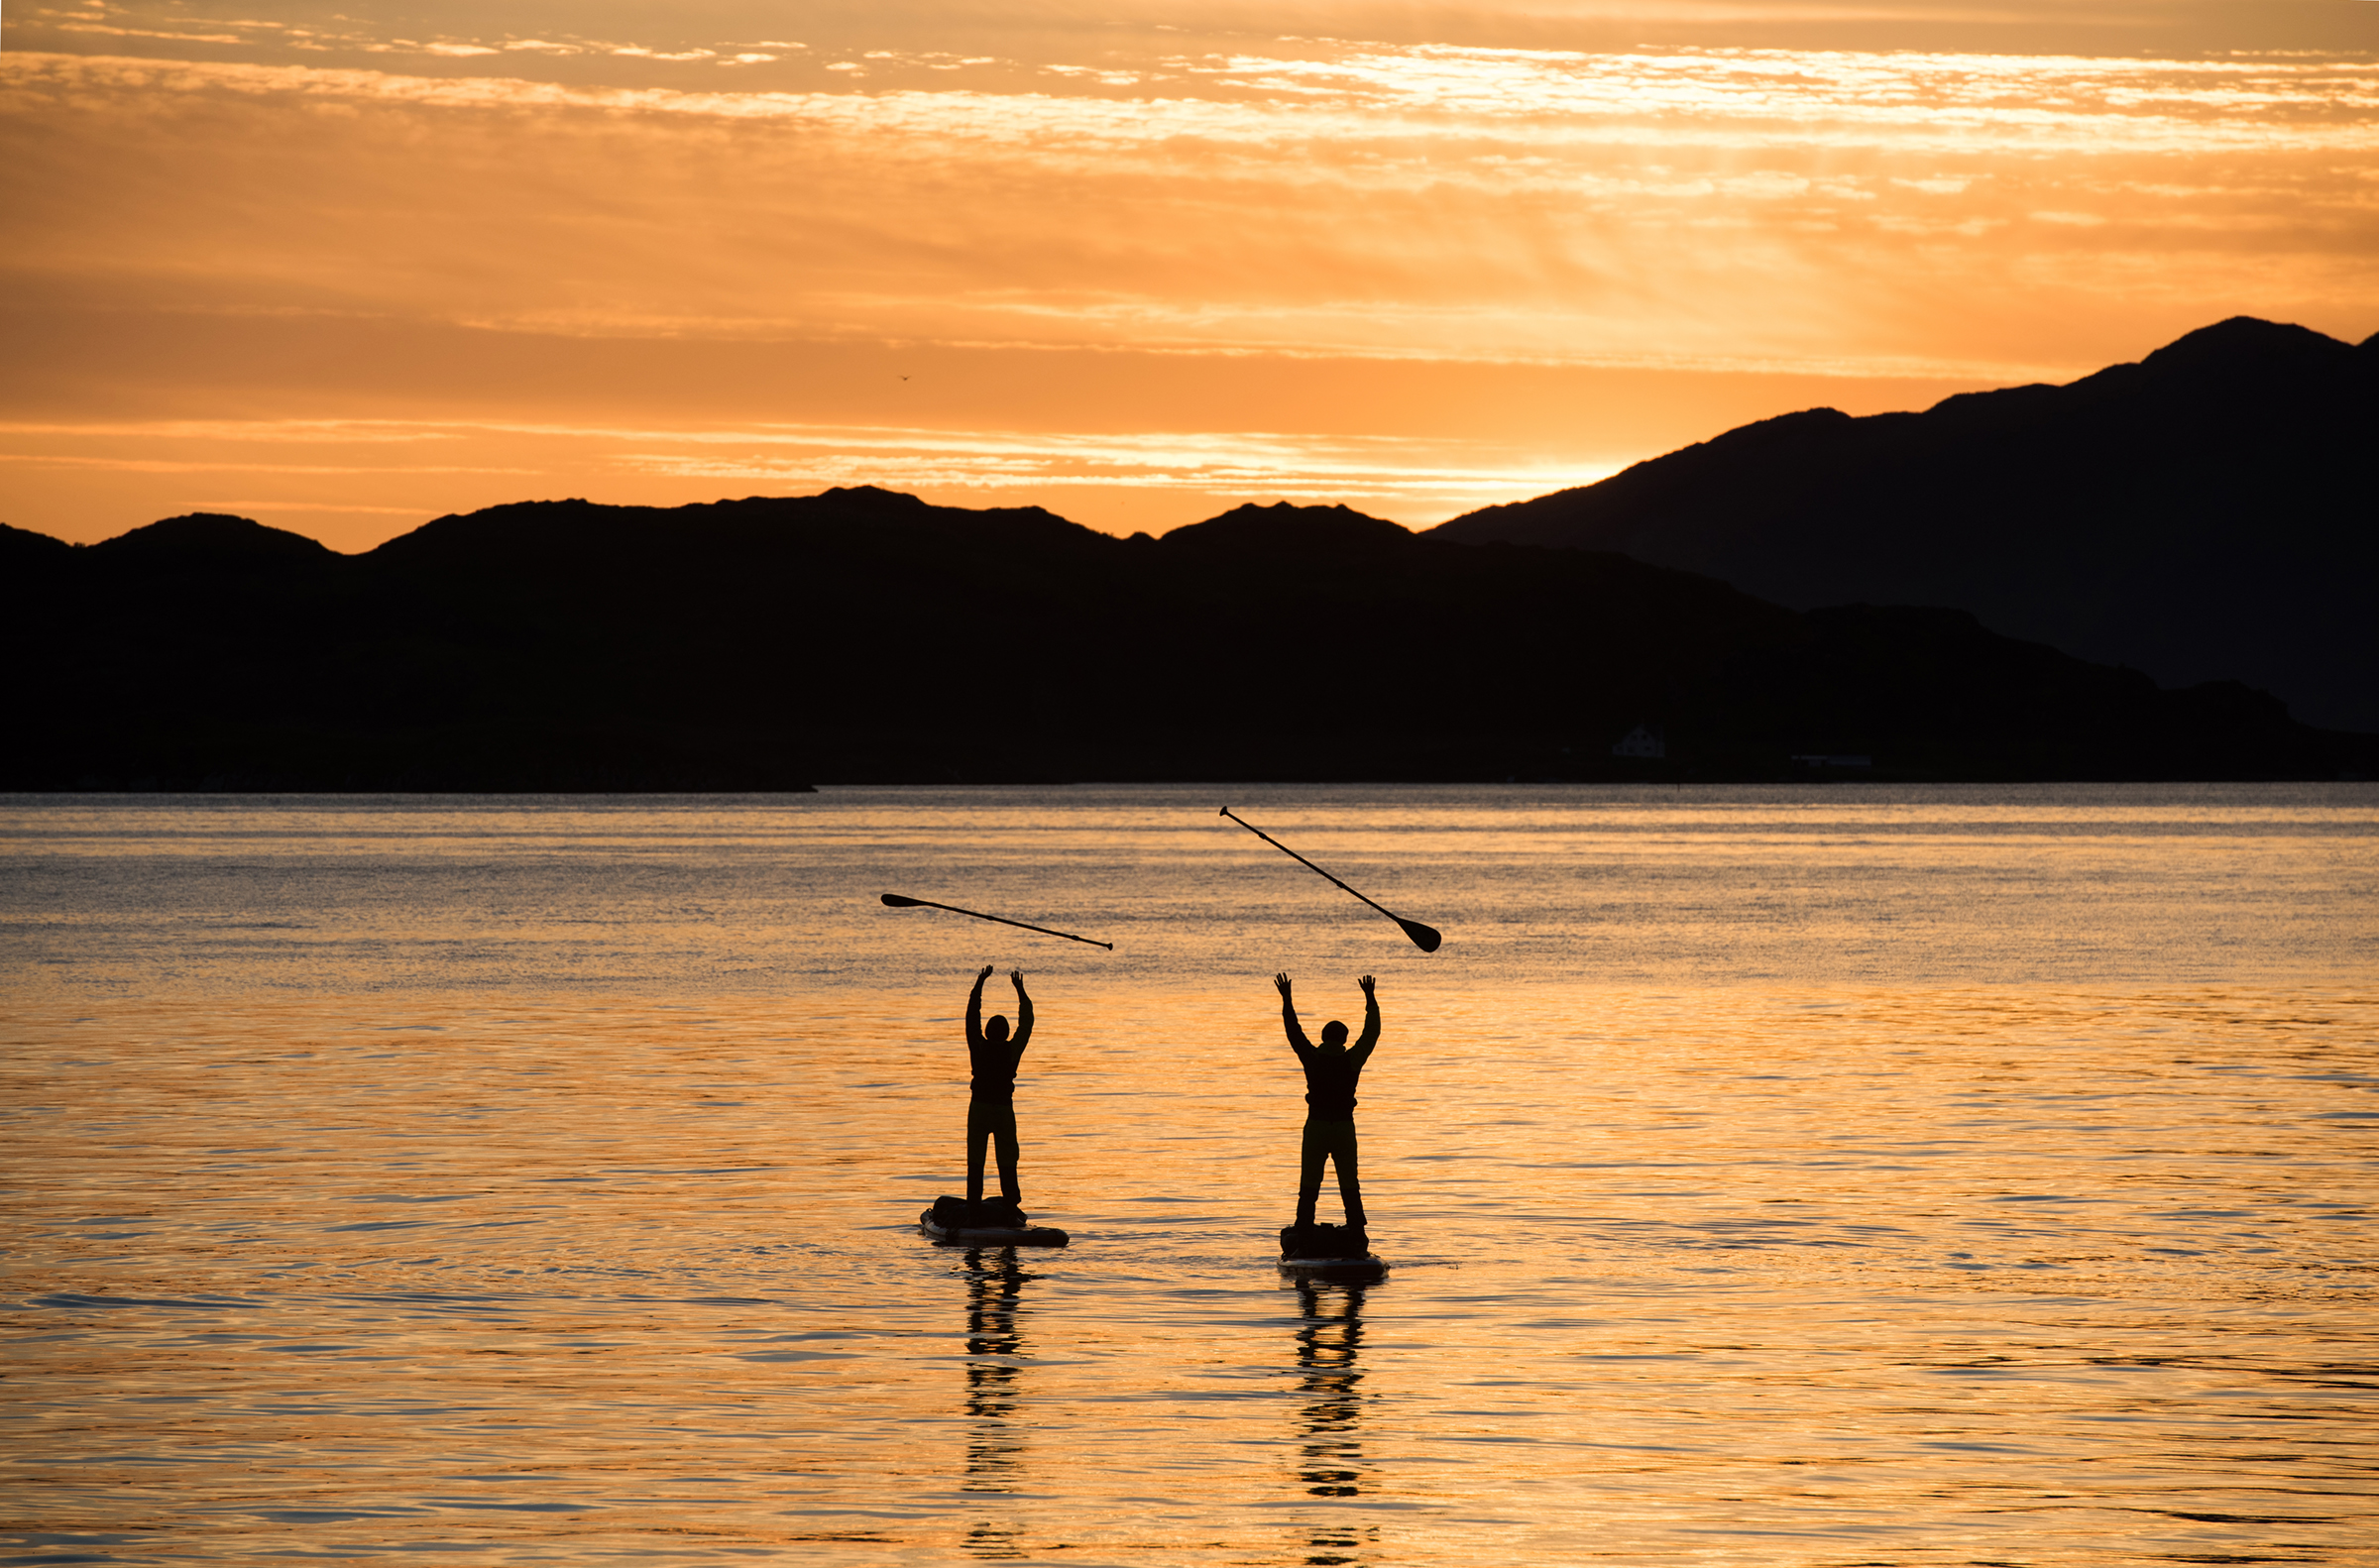 We often take for granted the things we see around us. from time to time it is good to celebrate life and express our gratitude towards the natural world we live in. SUP journey in northern Norway